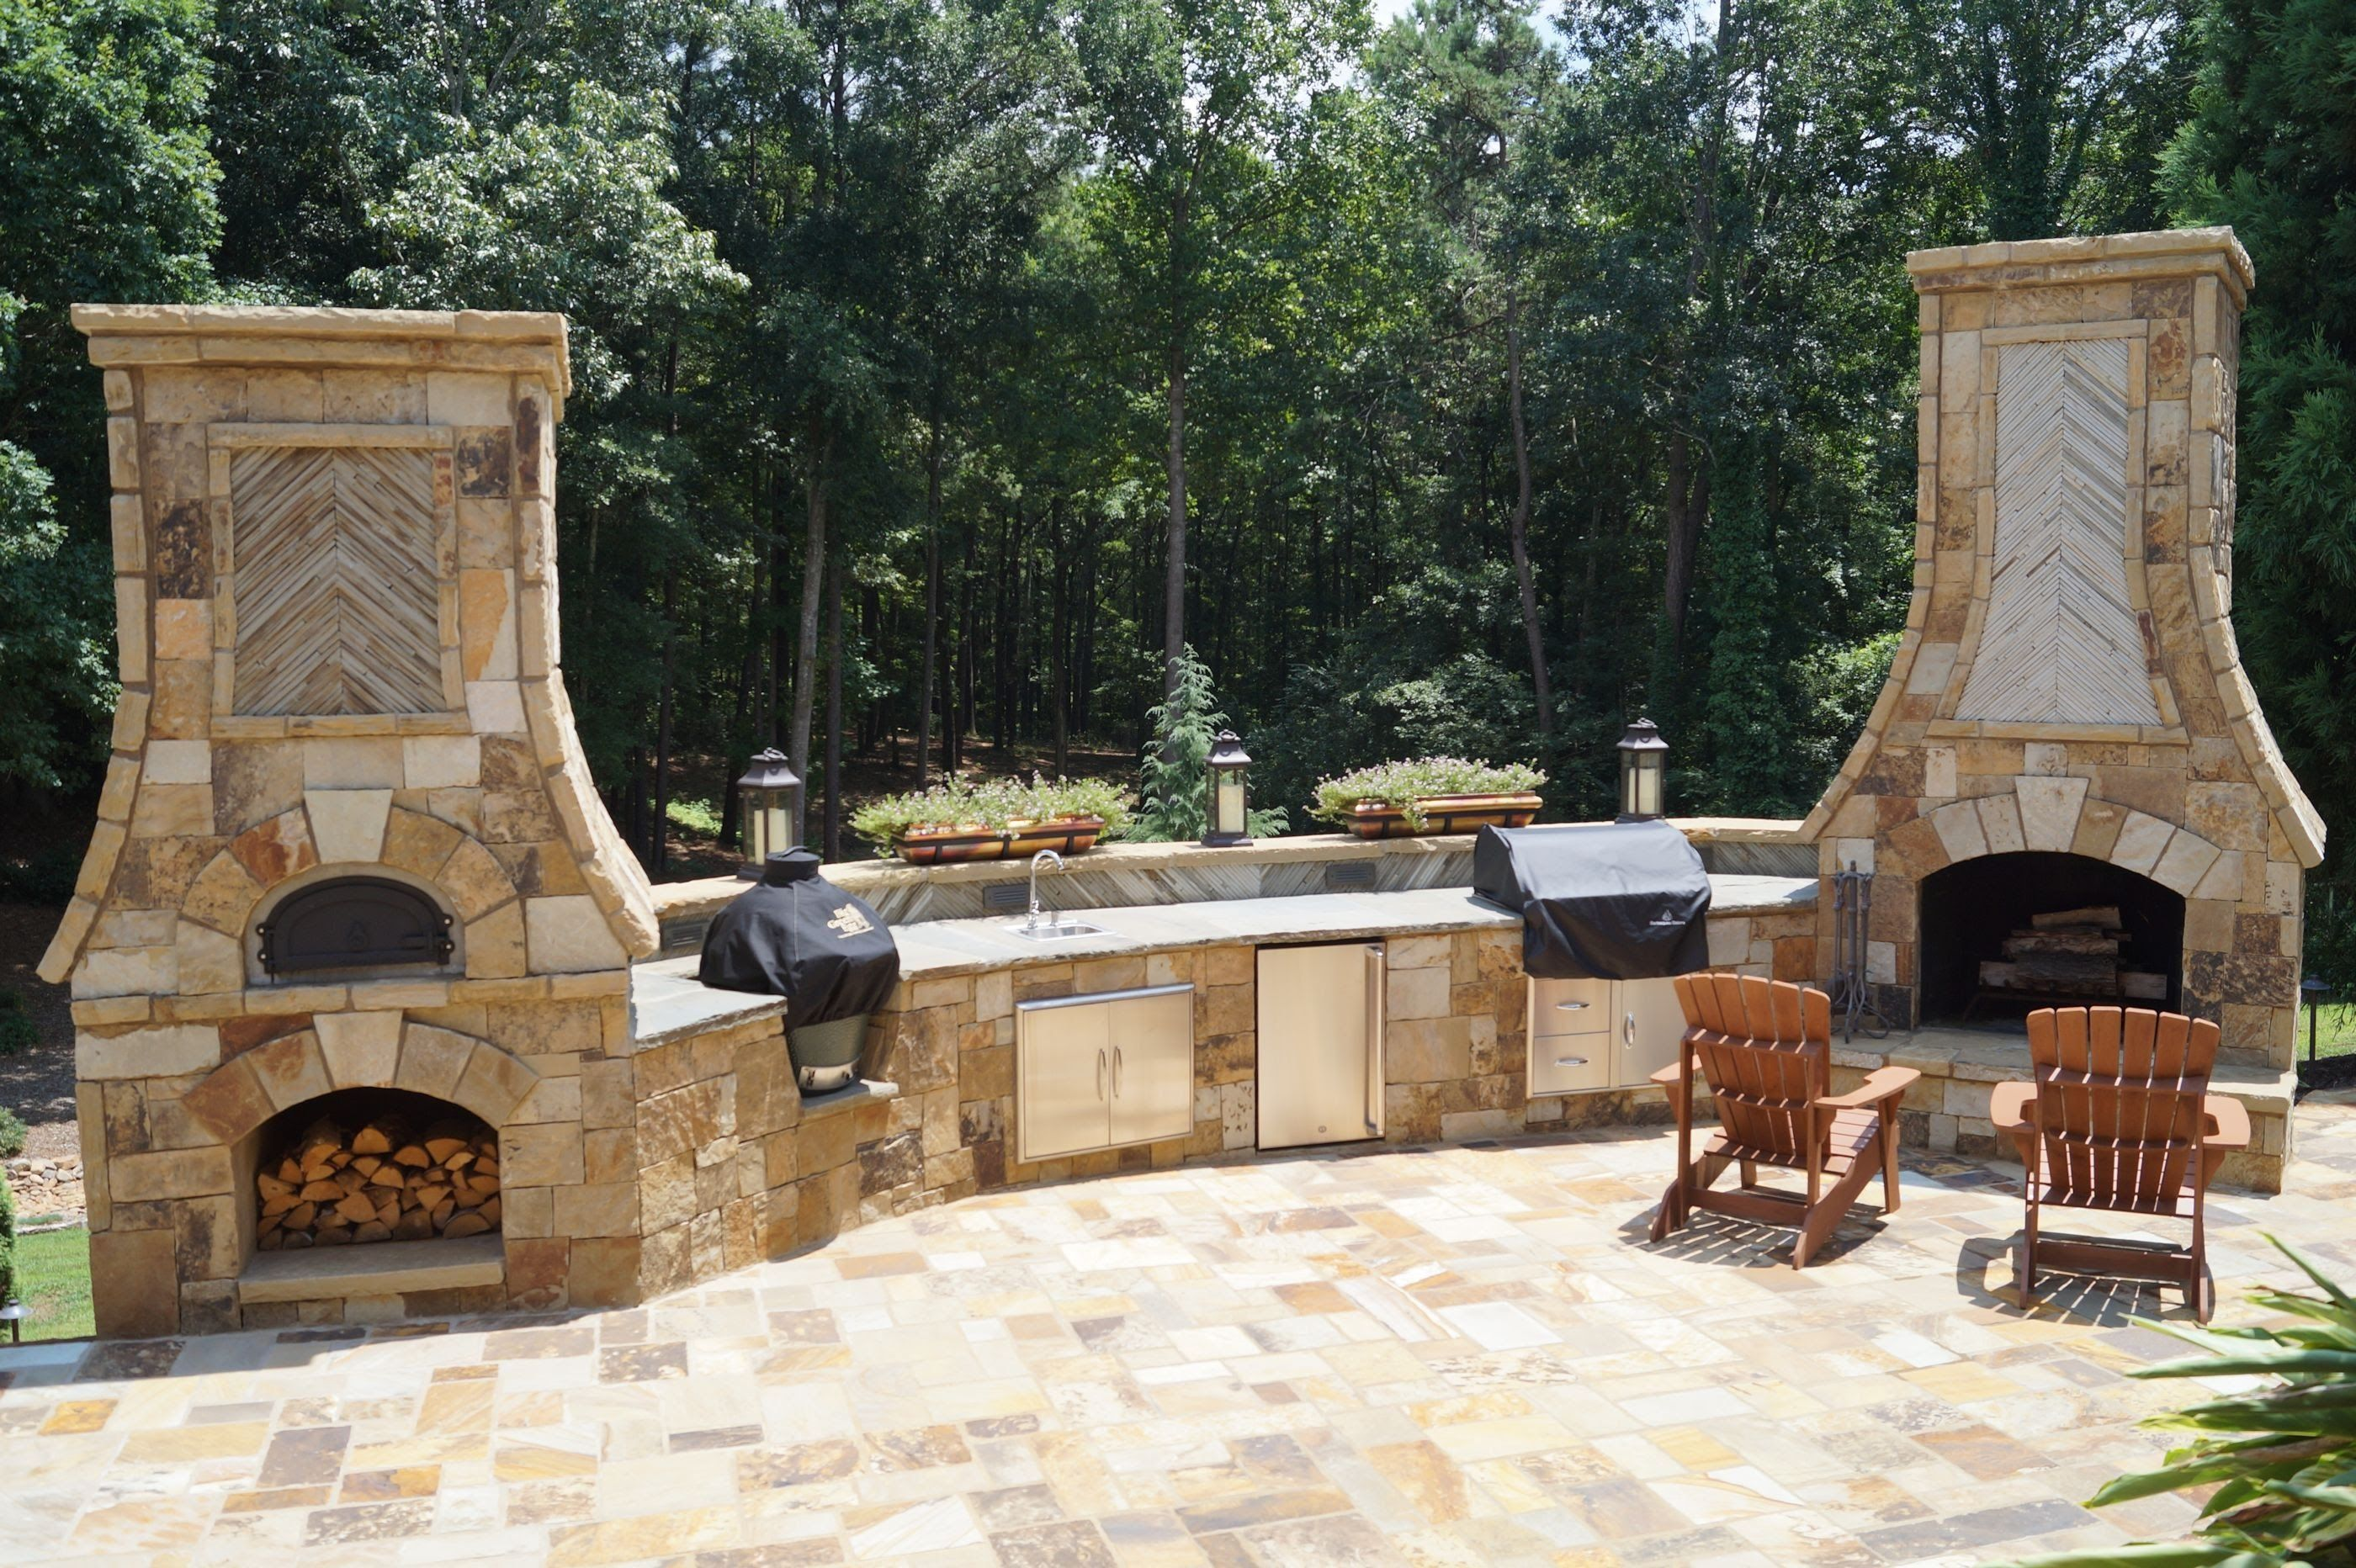 Outdoor Kitchen With Pizza Oven And Smoker Outdoor Fireplace Outdoor Fireplace Pizza Oven Backyard Kitchen